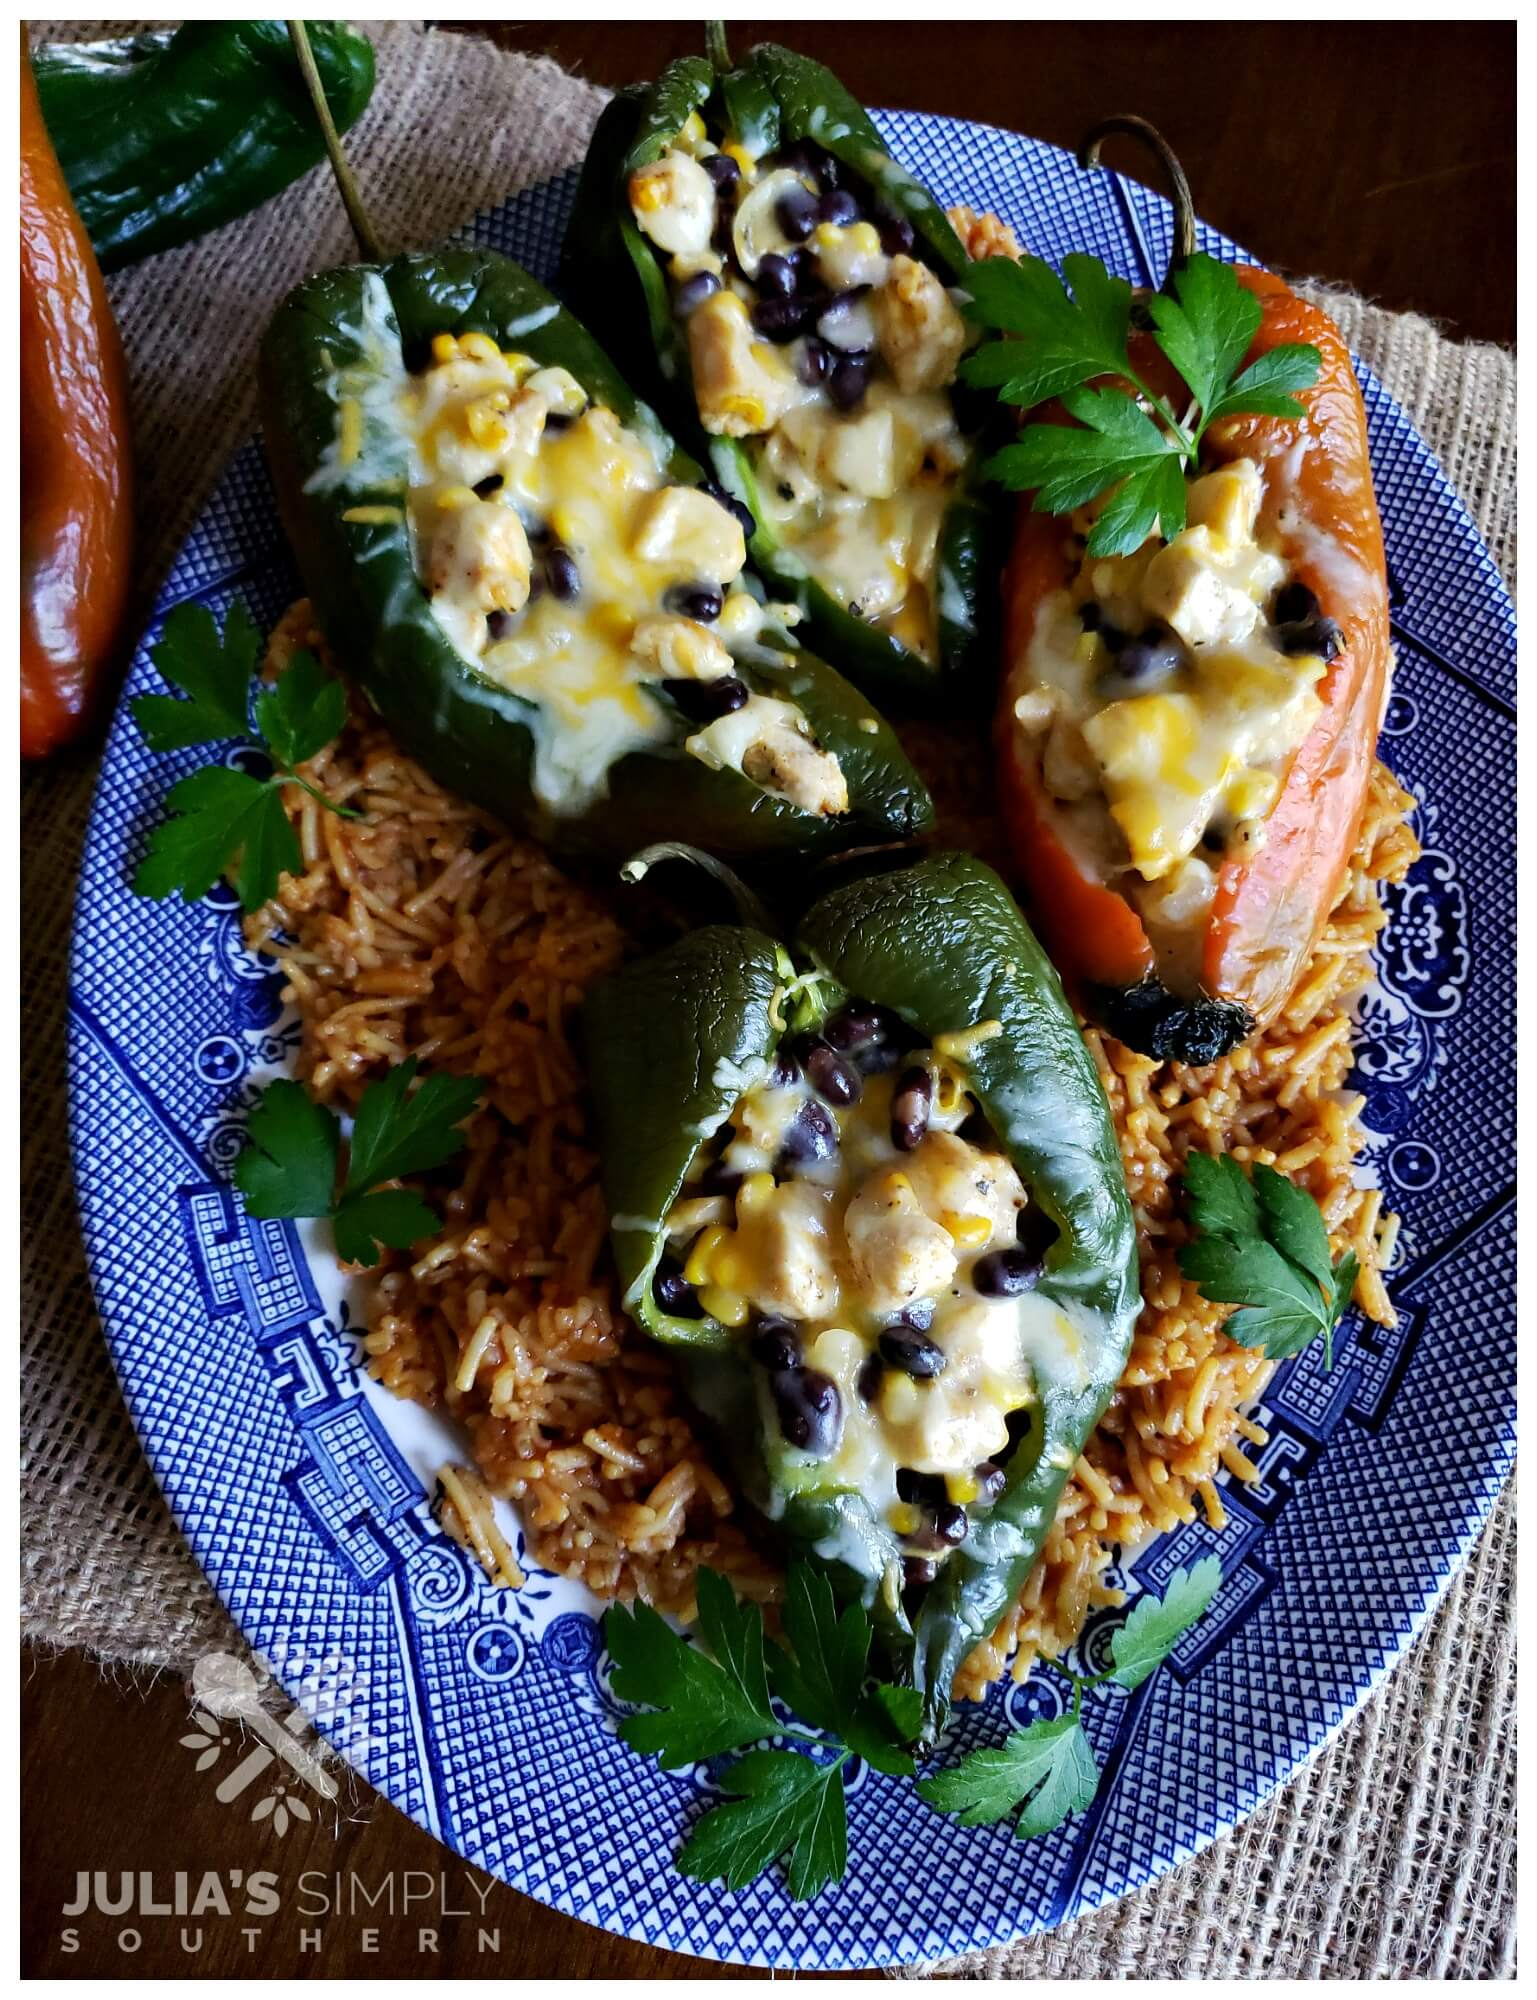 Blue and White Platter with Chicken and cheese stuffed poblano peppers on a bed of red spanish style rice garnished with parsley - Best stuffed peppers southwest style ever